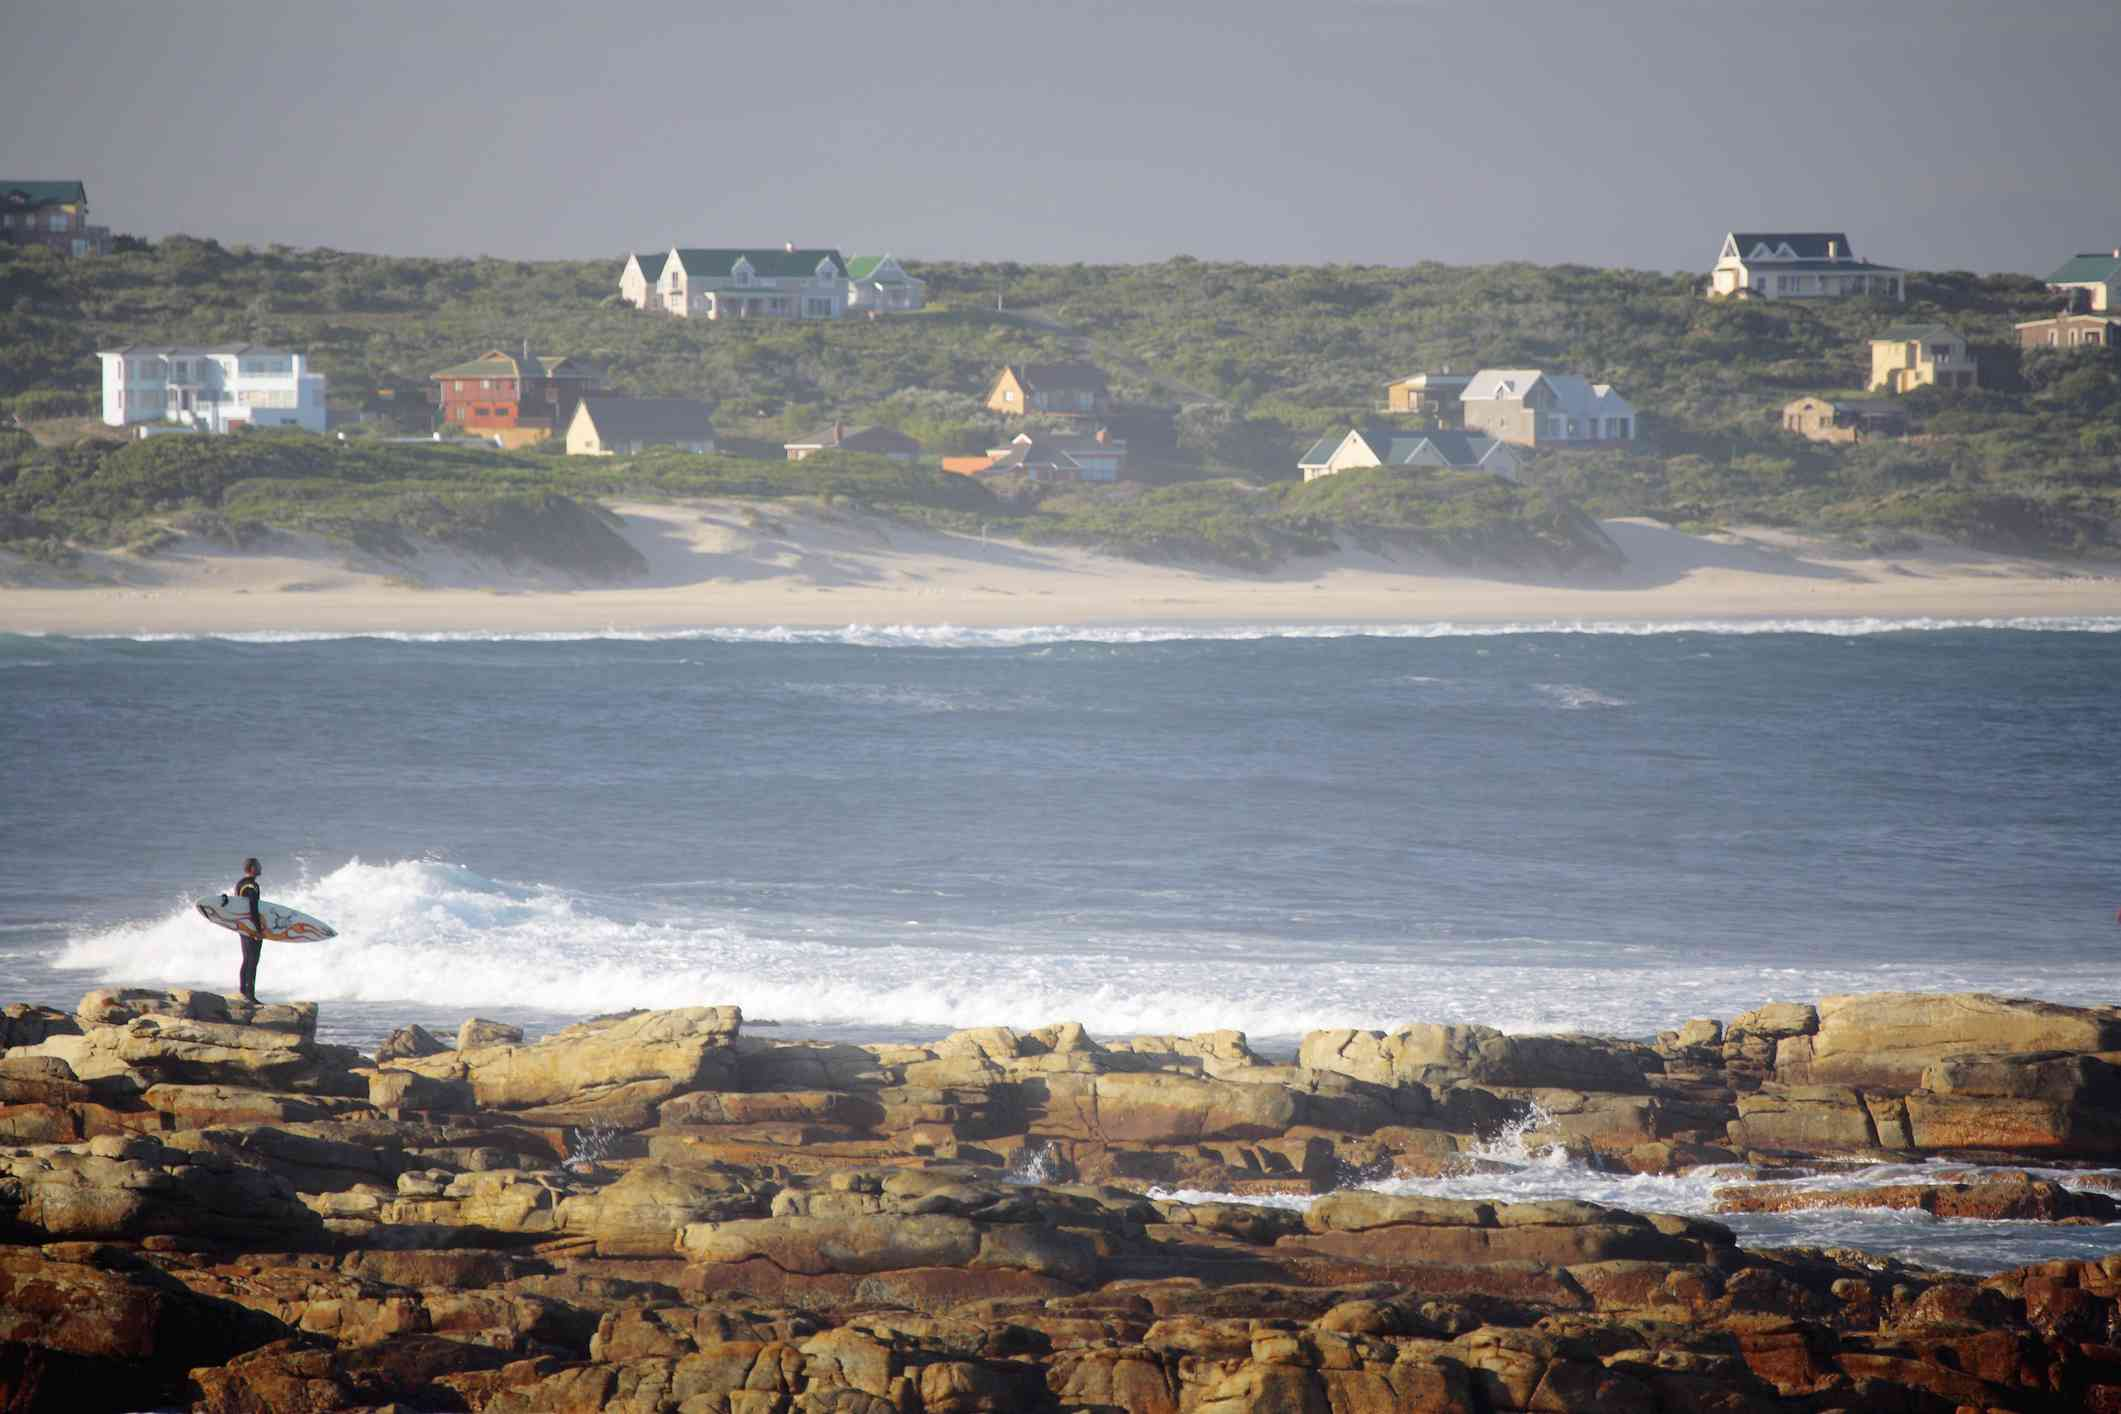 Early morning surfer, Cape St Francis, Eastern Cape, South Africa